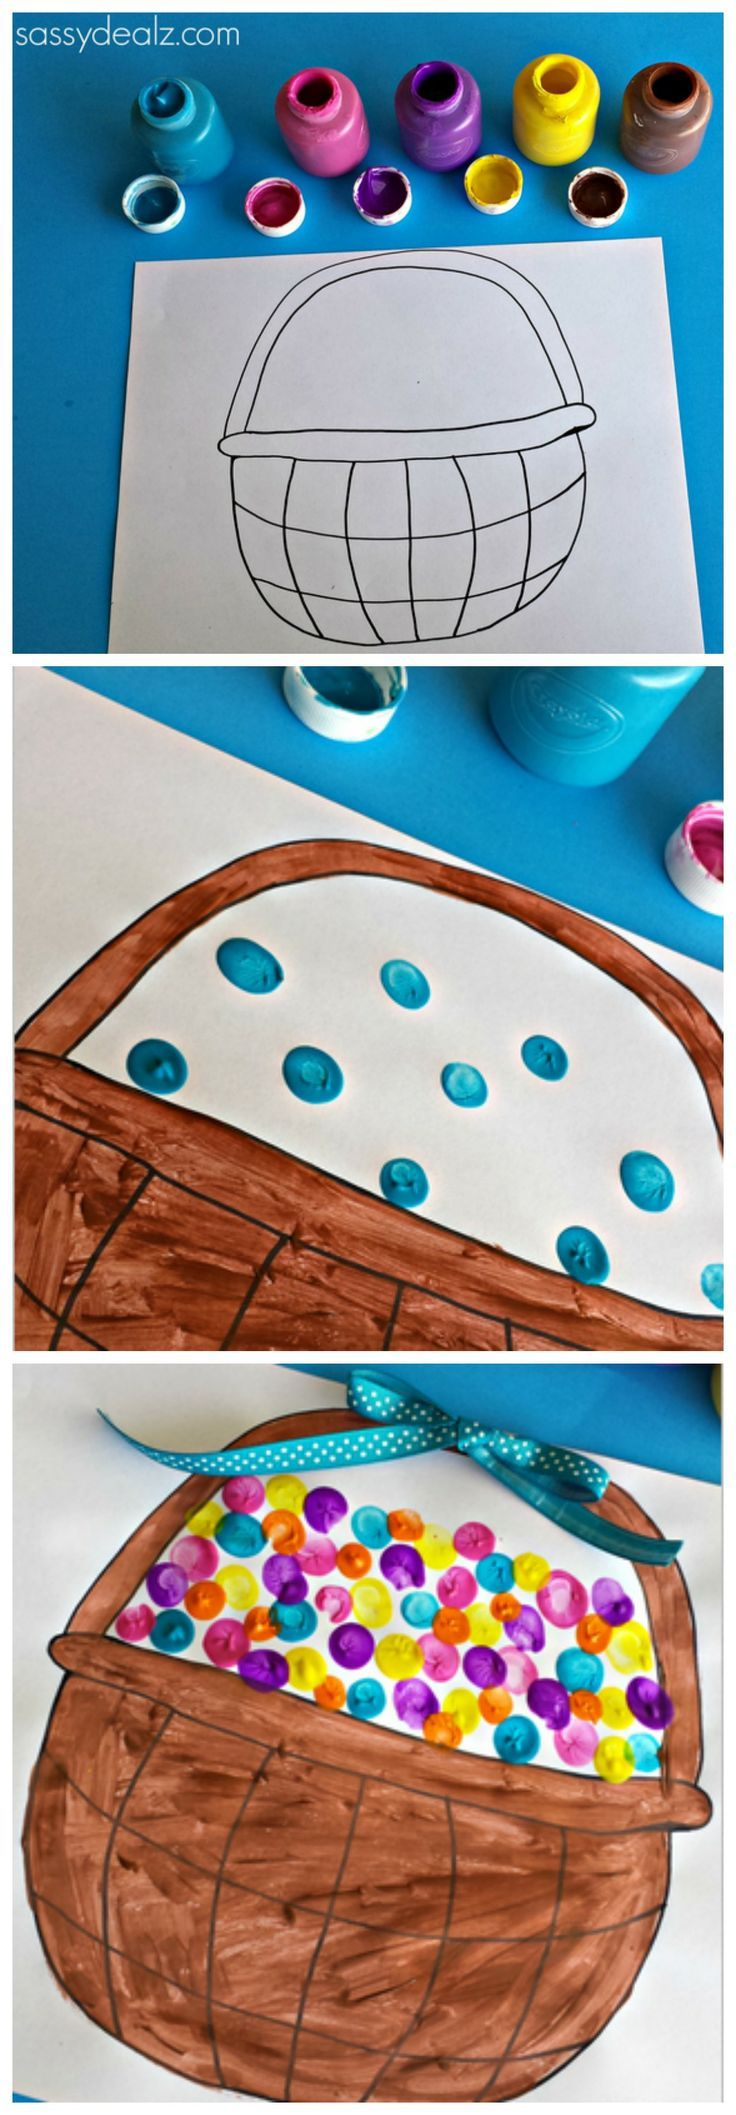 Fingerprint Craft For Kids Easter Eggs And Free Basket Coloring Page To Print